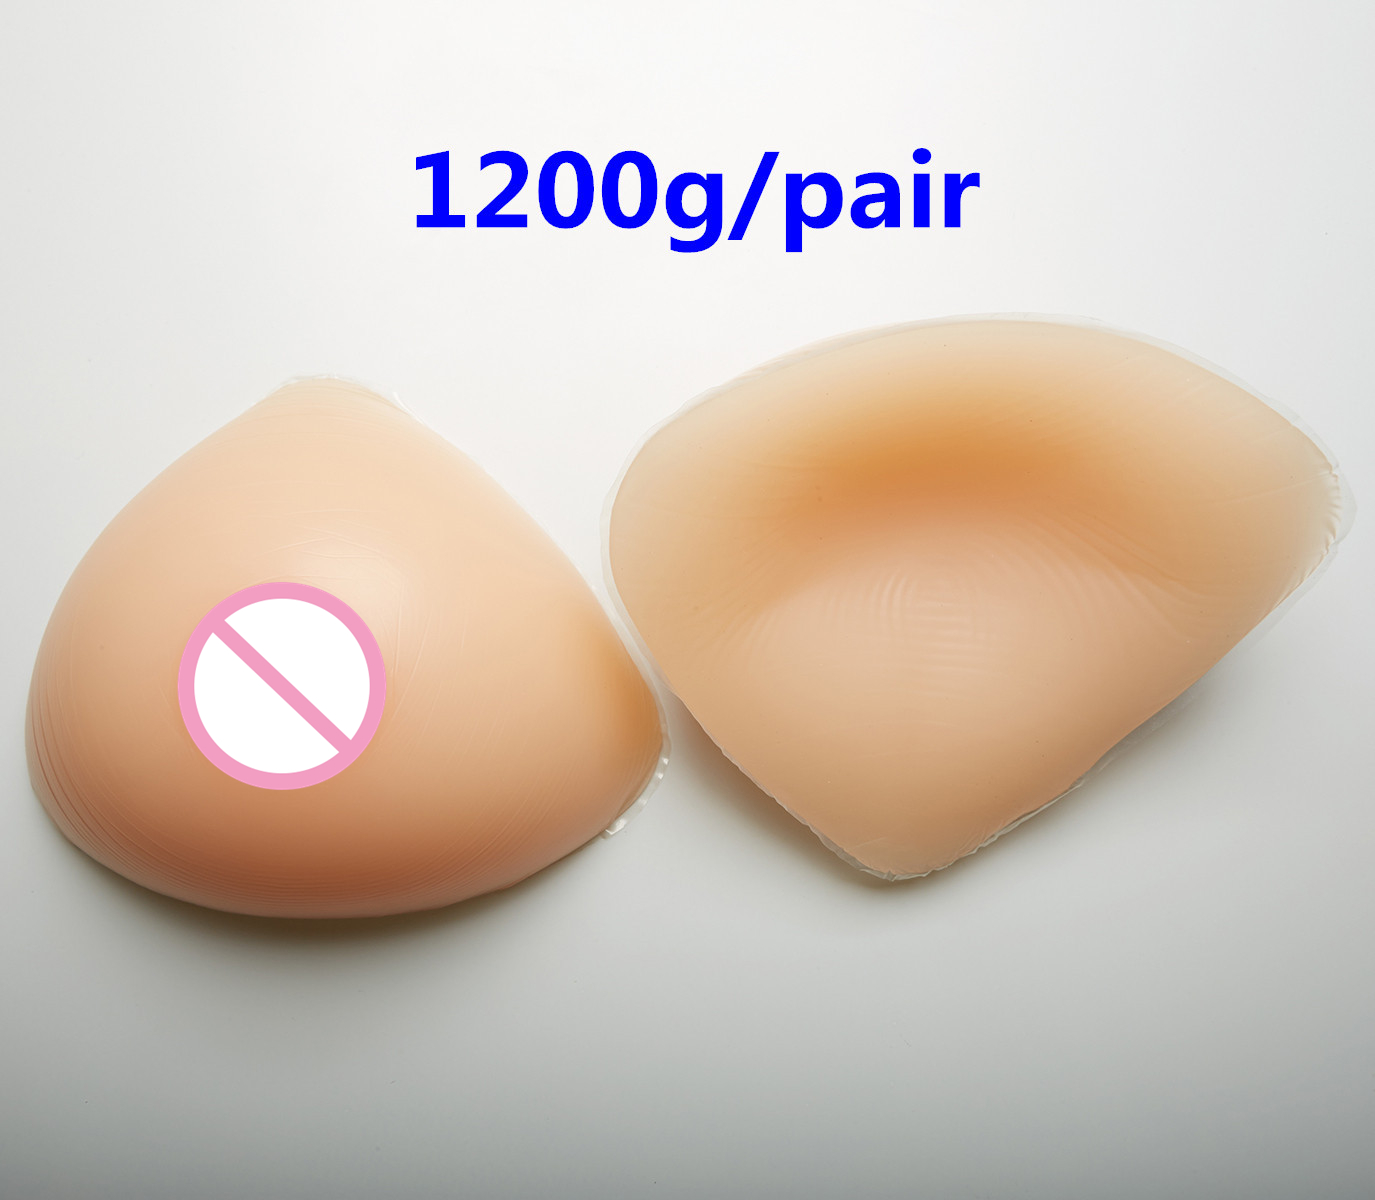 1200g/pair Artificial Breast Silicone Fake Breast Boobs Mastectomy Breast Form Fake Boobs For Crossdresser1200g/pair Artificial Breast Silicone Fake Breast Boobs Mastectomy Breast Form Fake Boobs For Crossdresser